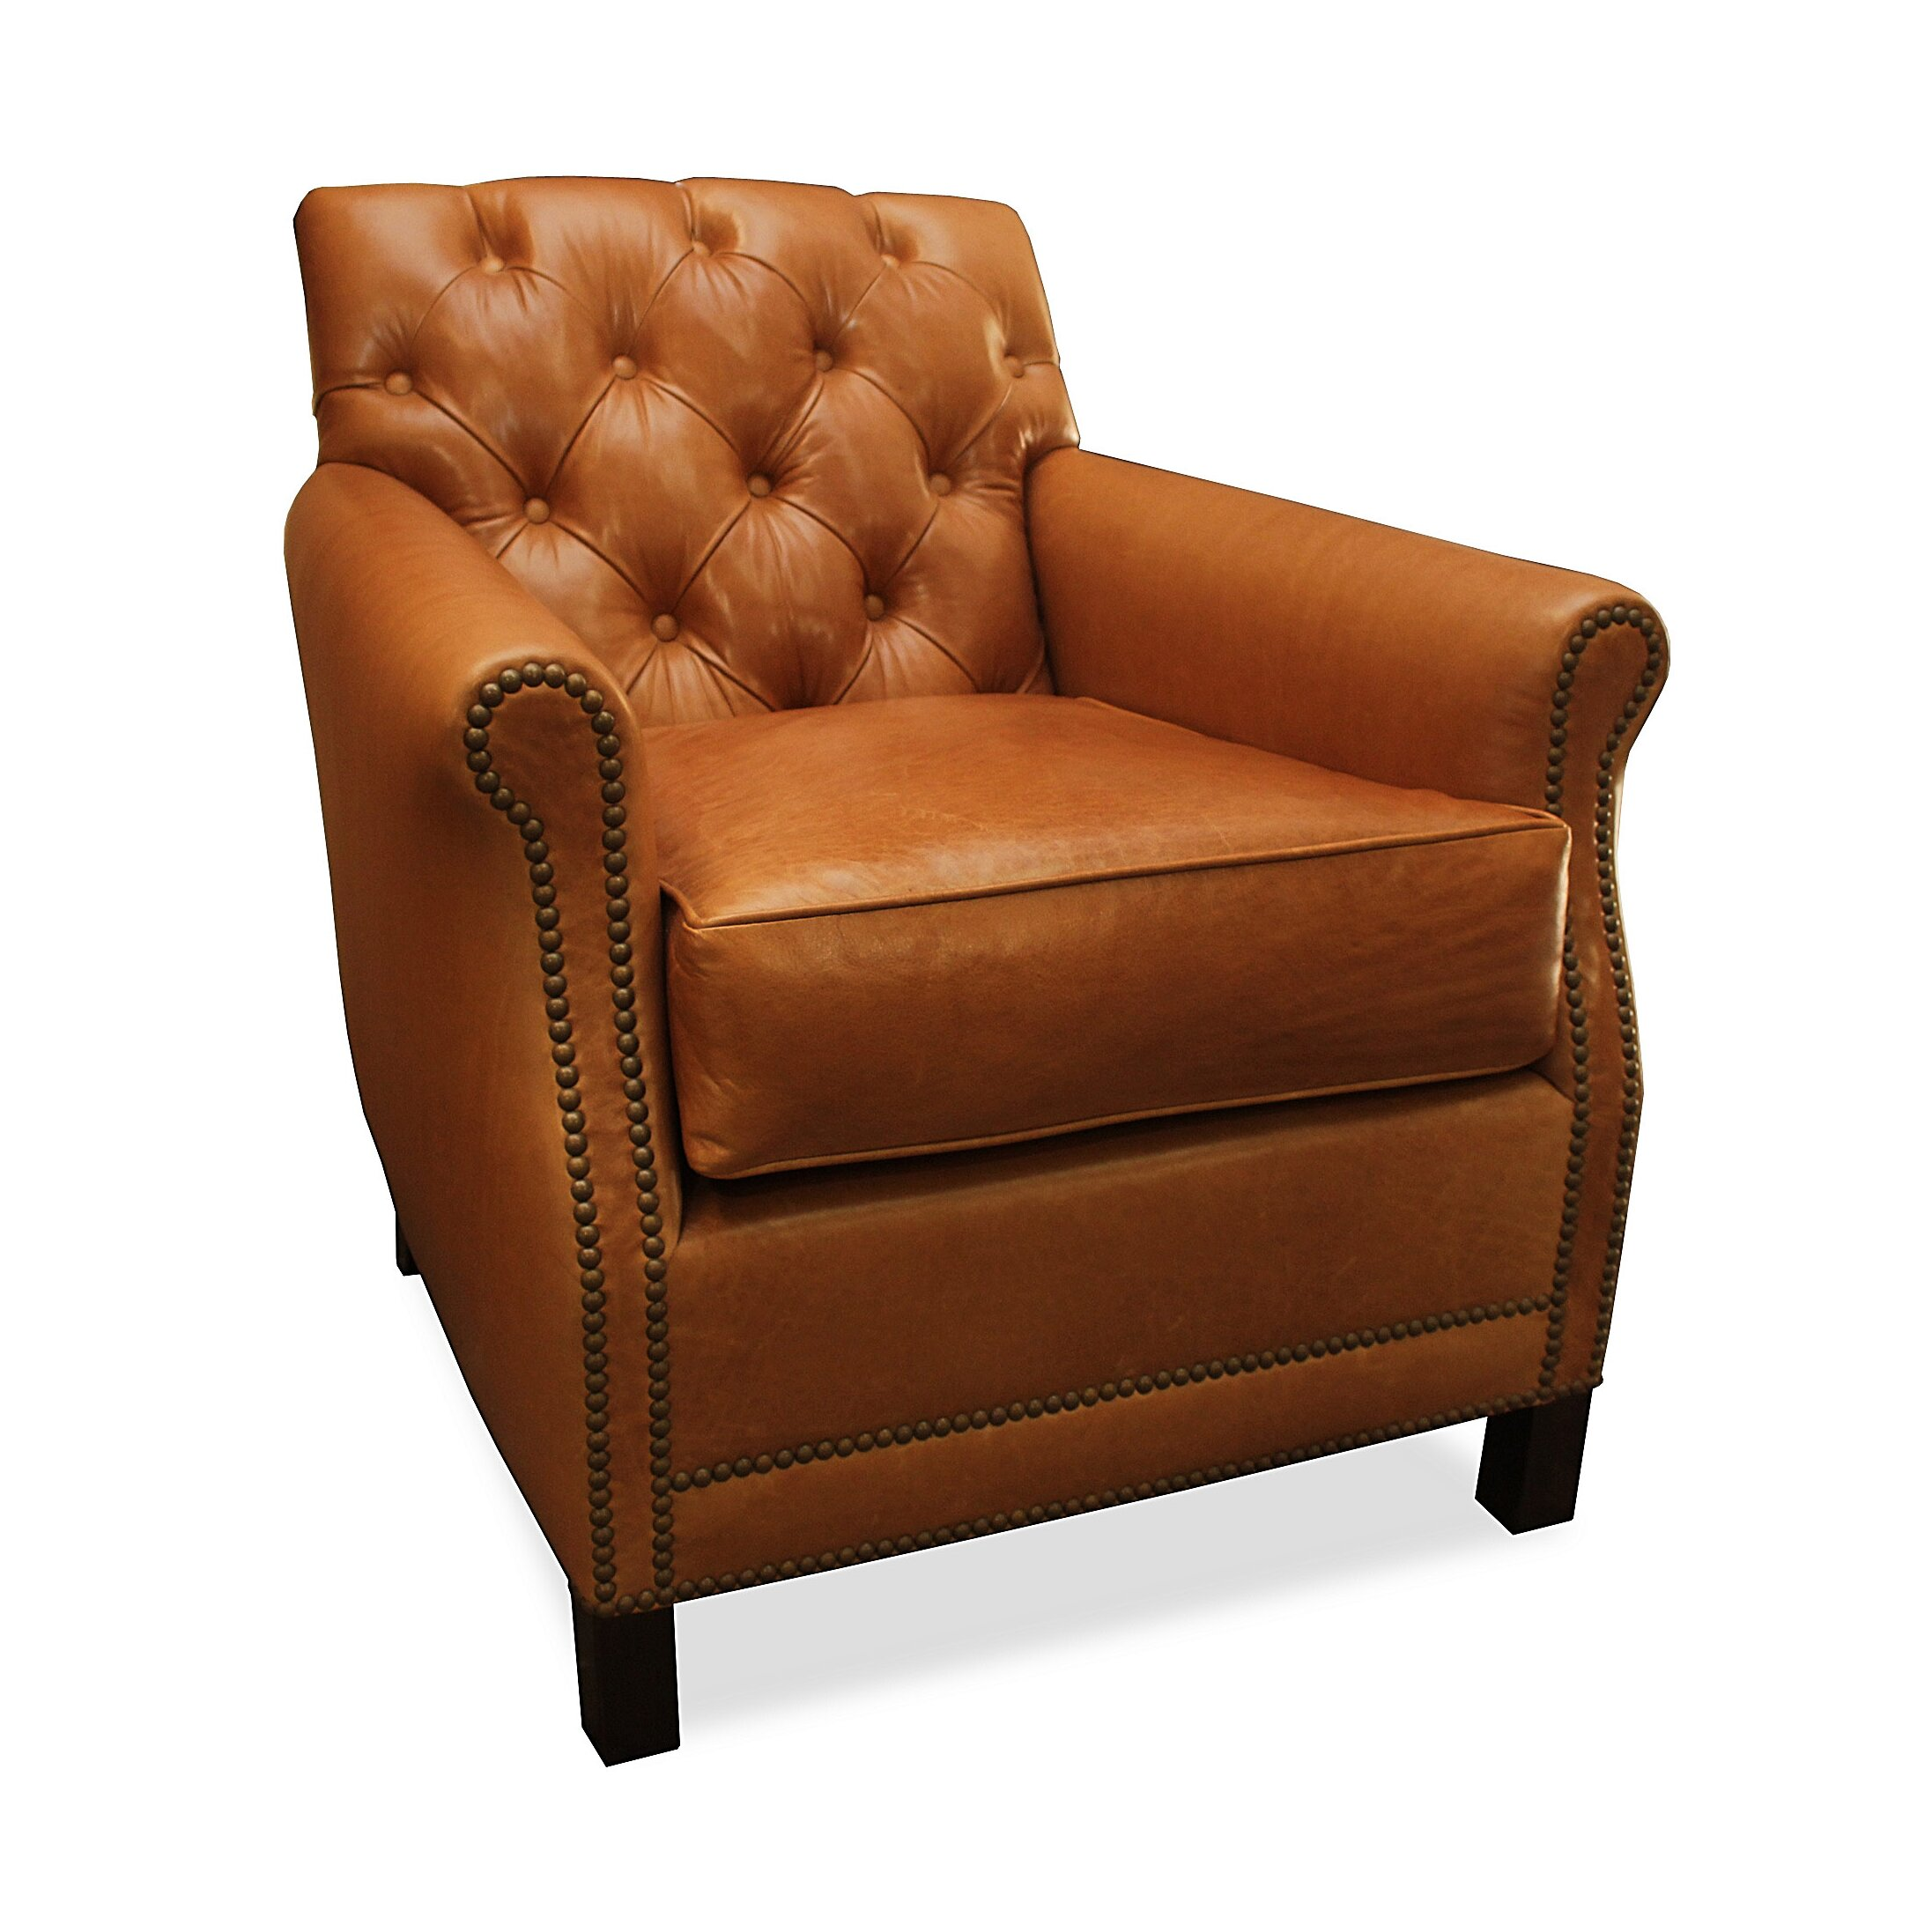 South cone home riga leather arm chair reviews wayfair for Furniture riga